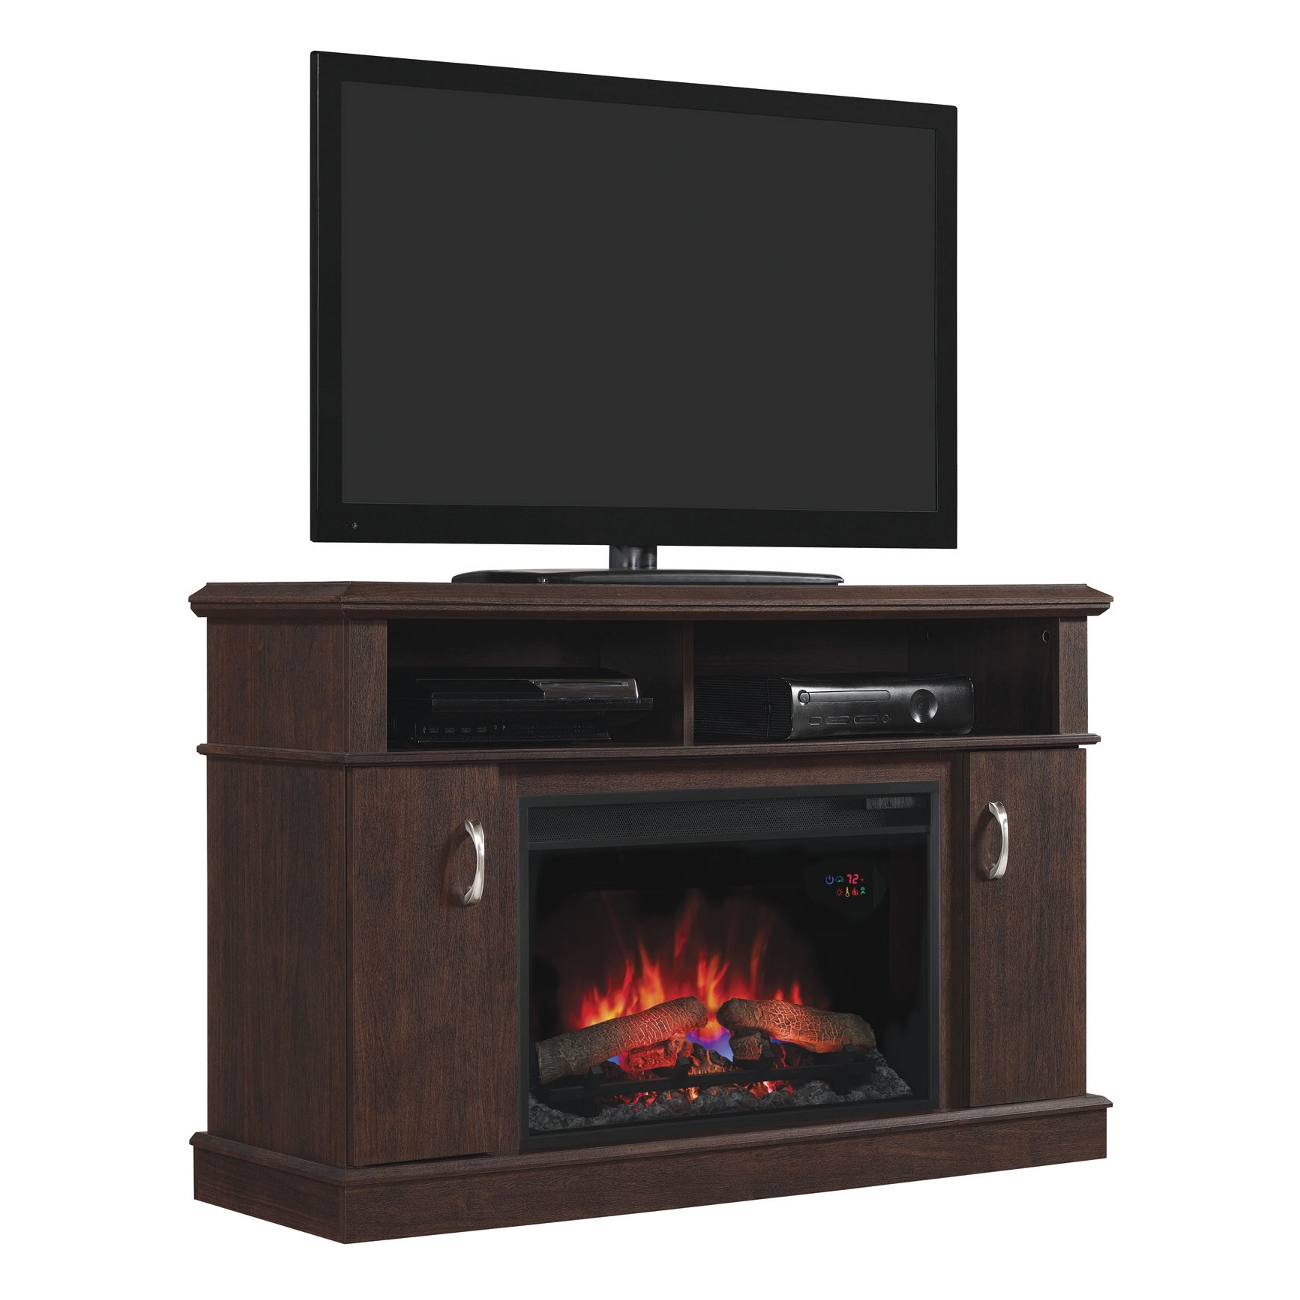 Classic Flame Dwell 26mm5516 Pc72 Electric Fireplace Media Console Electric Fireplaces